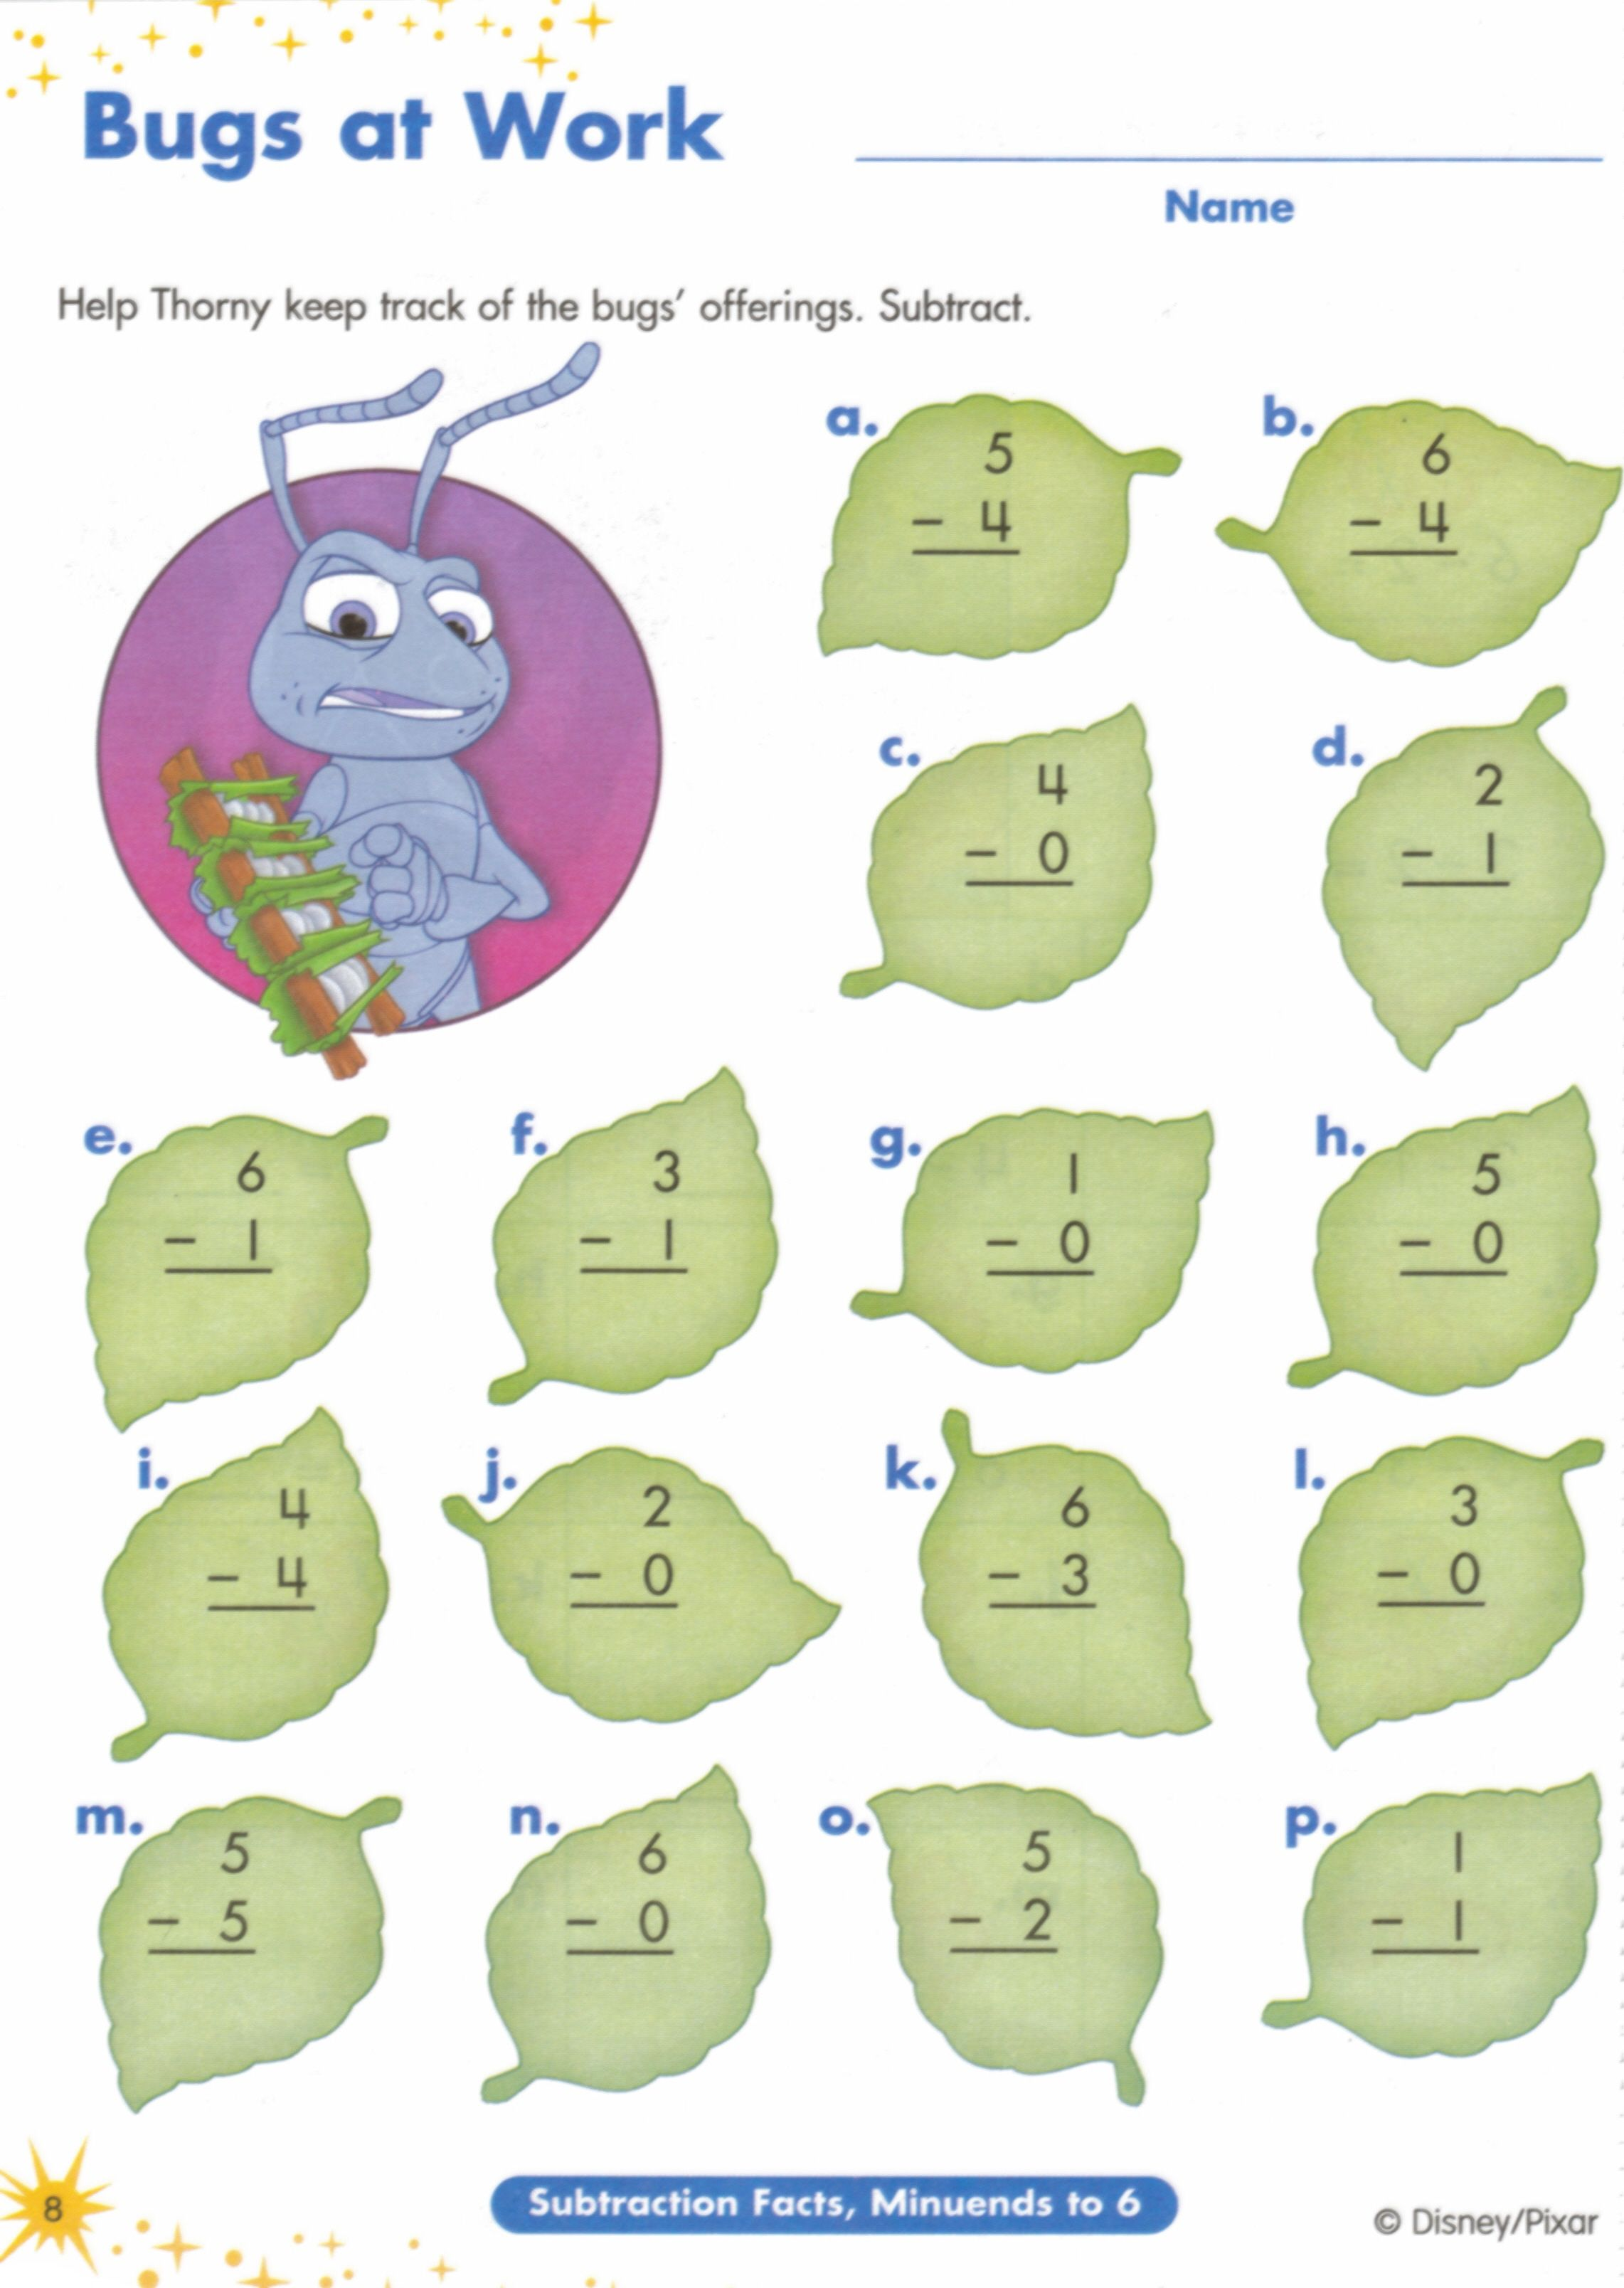 Weirdmailus  Winsome  Images About Worksheets On Pinterest  Fun Facts For Kids  With Remarkable  Images About Worksheets On Pinterest  Fun Facts For Kids Earth Day Worksheets And Jungles With Archaic Printable Reading Comprehension Worksheets For Th Grade Also Numbers  Worksheets For Kindergarten In Addition Divide By  Worksheet And Community Helpers Worksheets Preschool As Well As Ordering Decimals On A Number Line Worksheet Additionally Holocaust Vocabulary Worksheet From Pinterestcom With Weirdmailus  Remarkable  Images About Worksheets On Pinterest  Fun Facts For Kids  With Archaic  Images About Worksheets On Pinterest  Fun Facts For Kids Earth Day Worksheets And Jungles And Winsome Printable Reading Comprehension Worksheets For Th Grade Also Numbers  Worksheets For Kindergarten In Addition Divide By  Worksheet From Pinterestcom